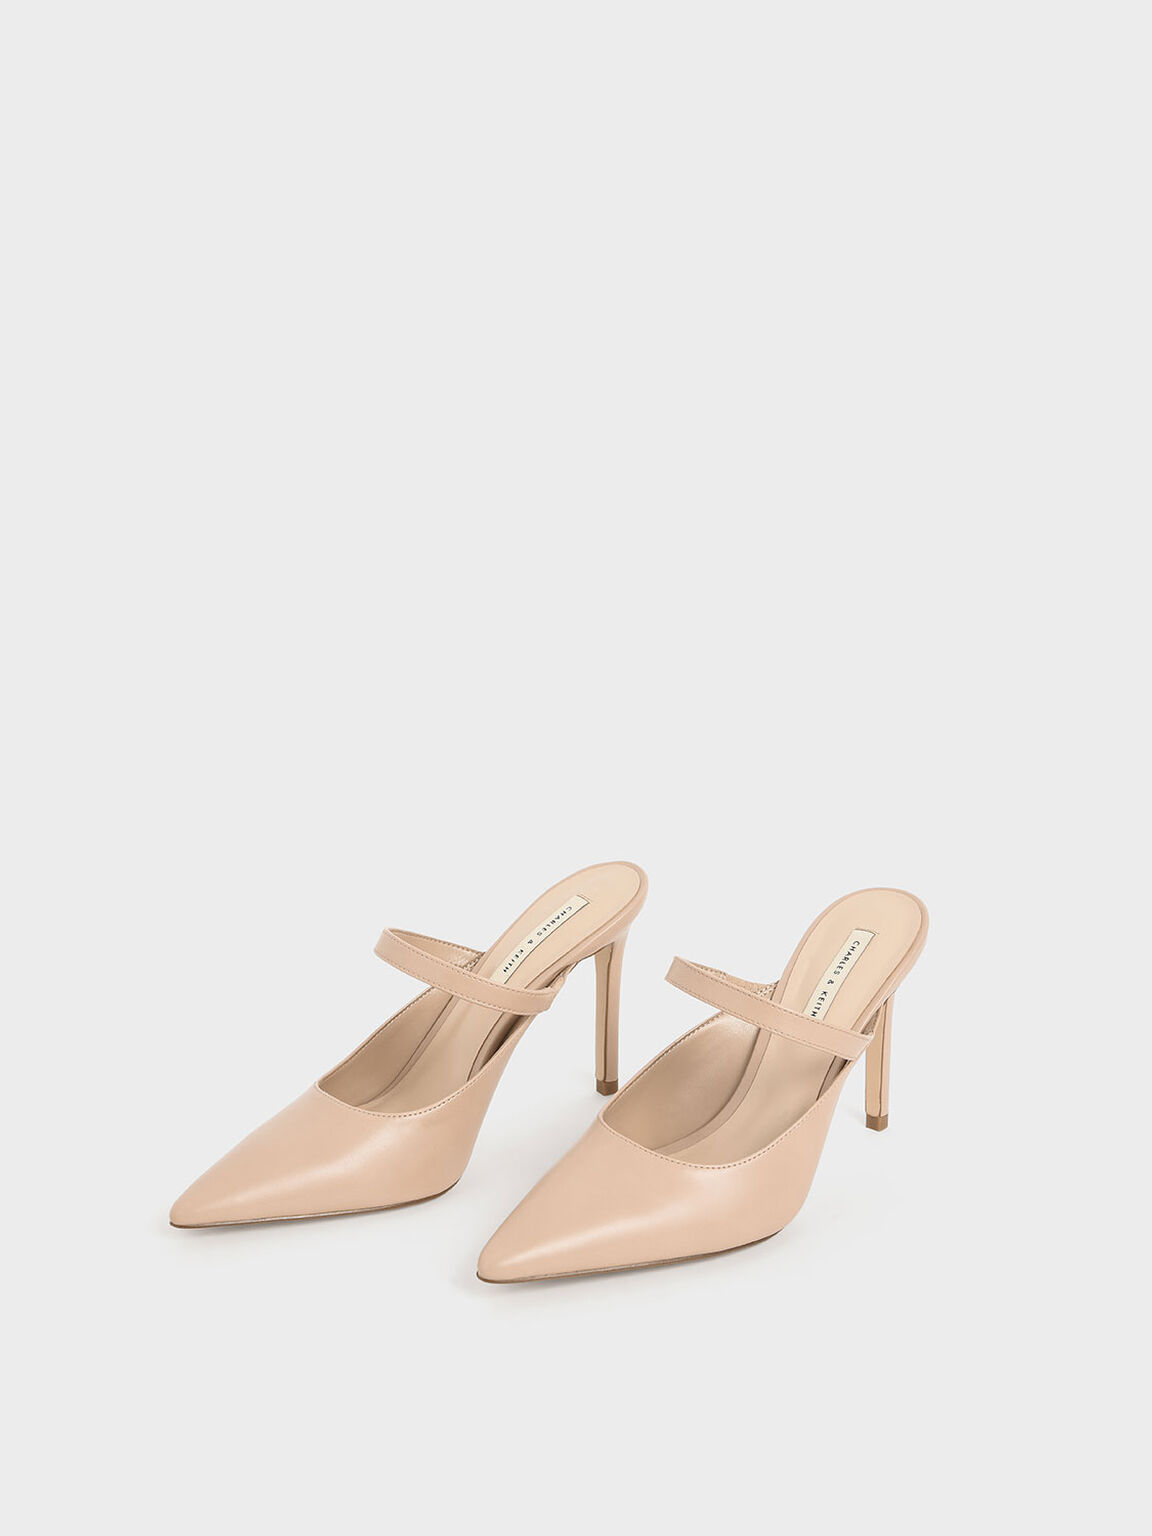 Mary Jane Stiletto Heel Mules, Nude, hi-res